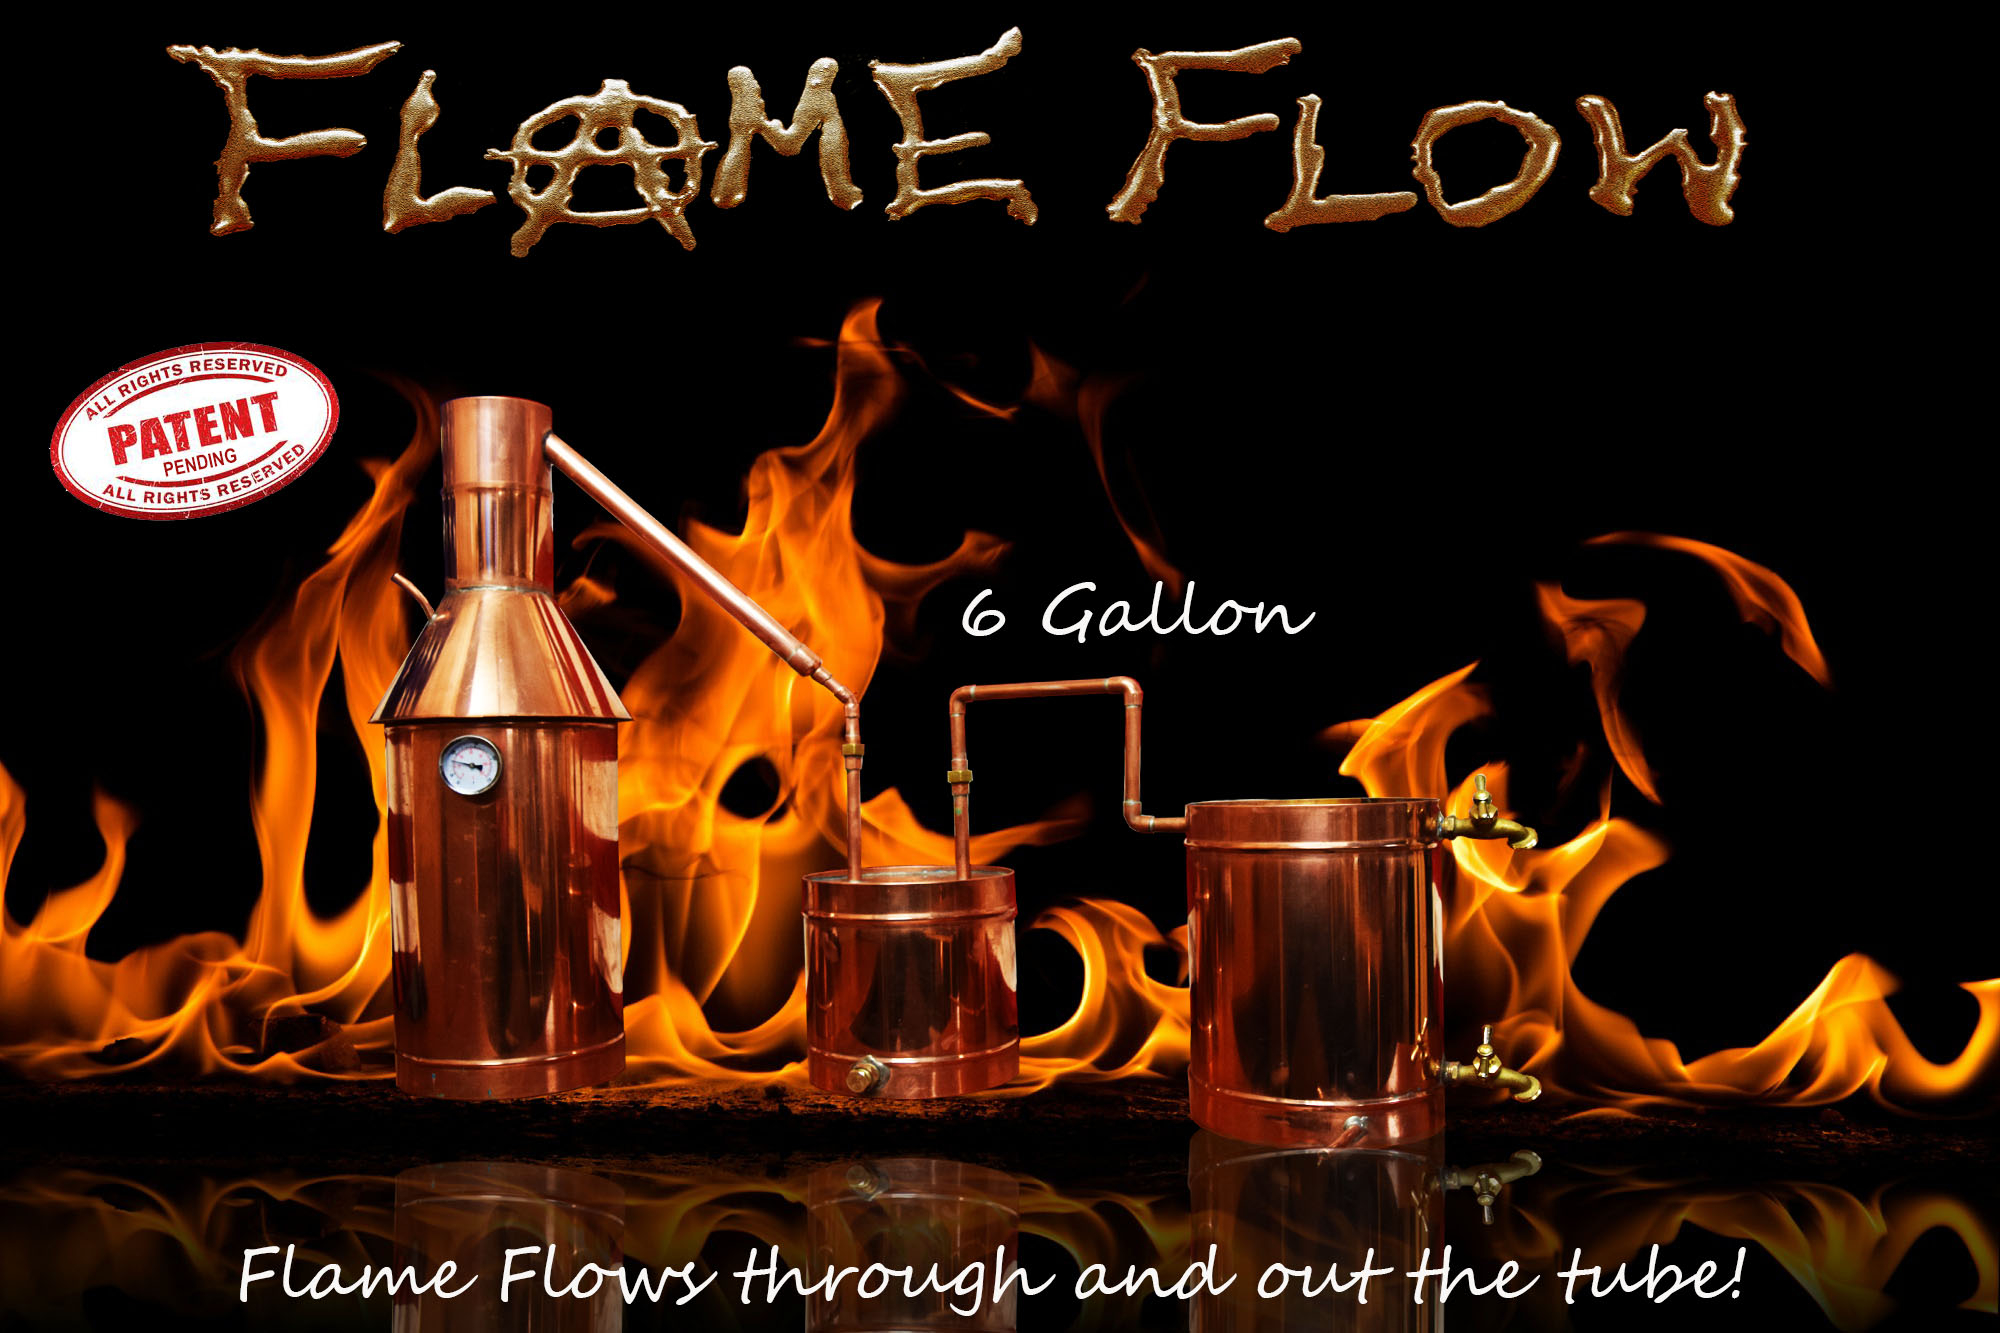 New Patent Pending Flame Flow Design Moonshine Still Diagram